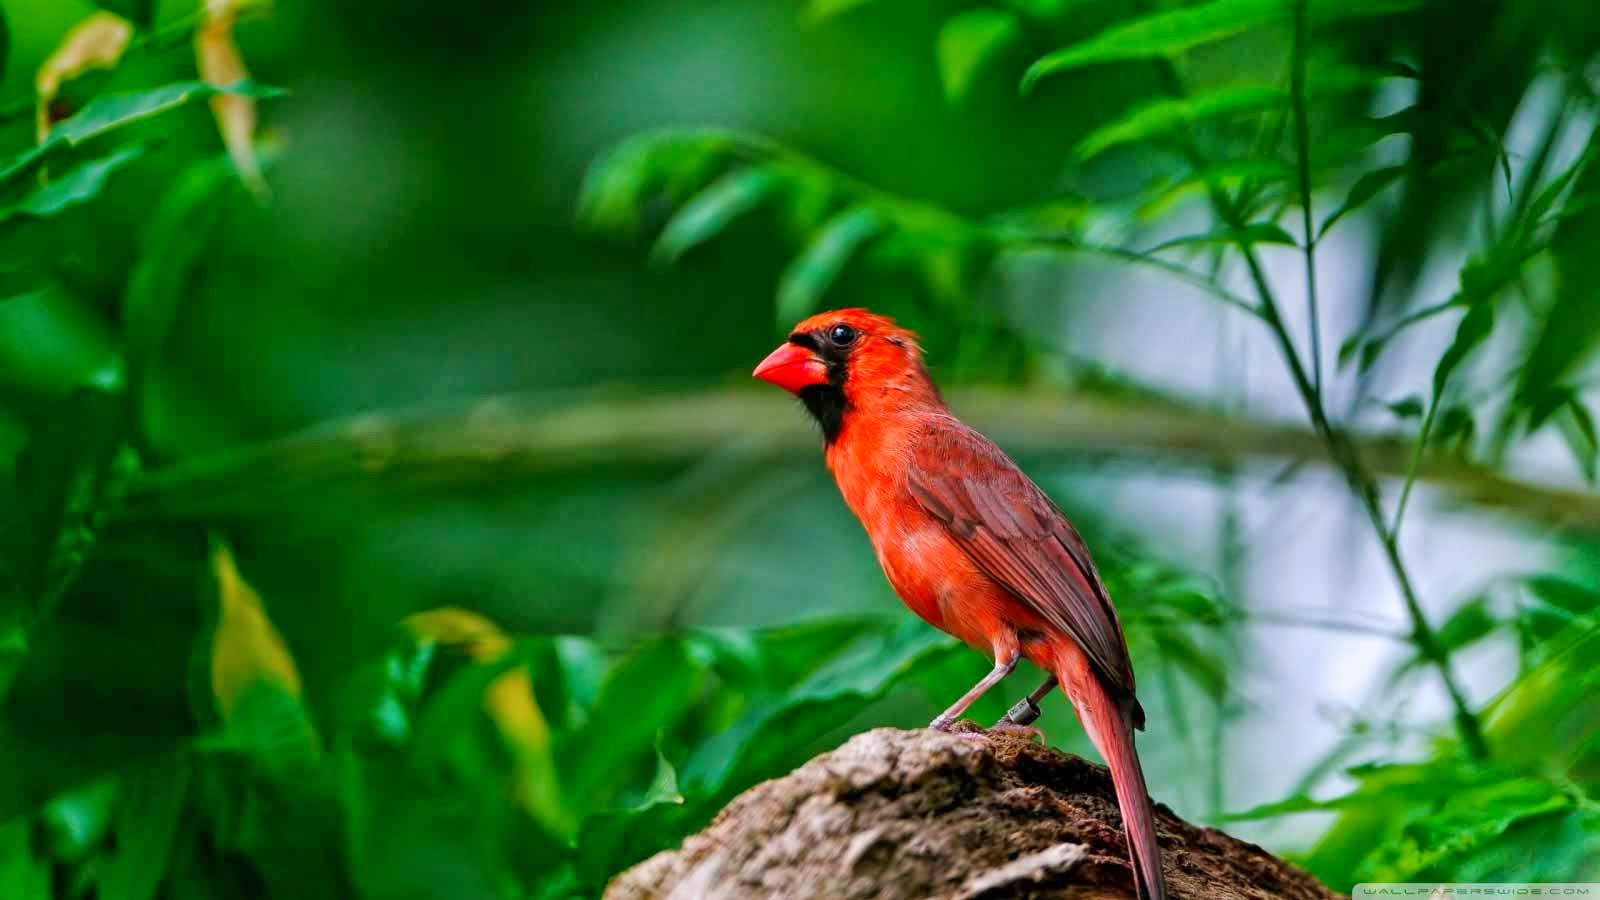 40 free beautiful birds wallpapers hd tinydesignr - Hd birds images download ...